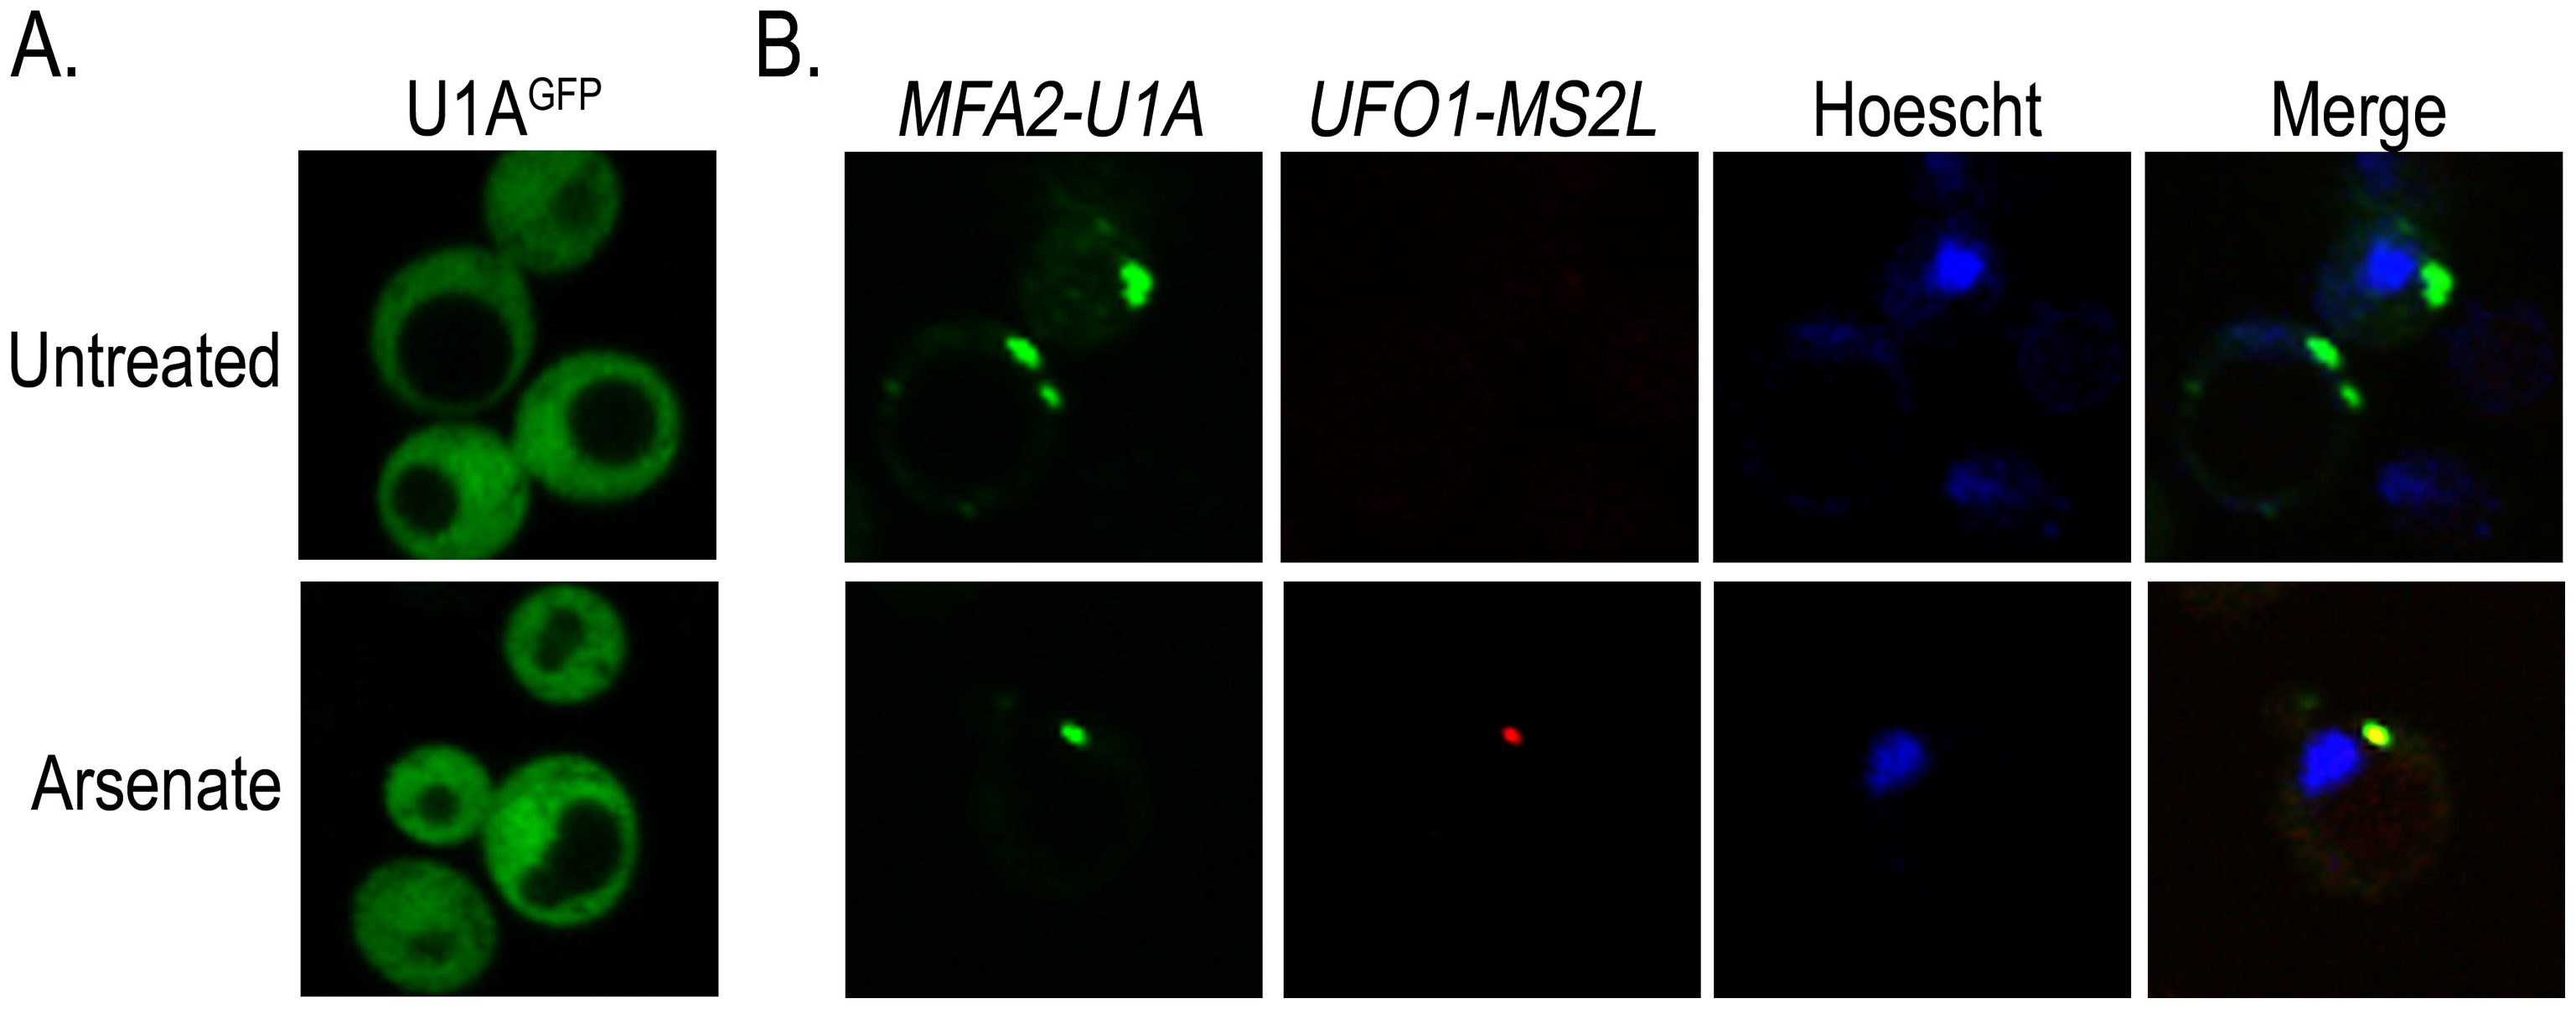 <i>UFO1-MS2L</i> and <i>MFA2-U1A</i> mRNAs are sequestered in the same PBs after arsenate stress.